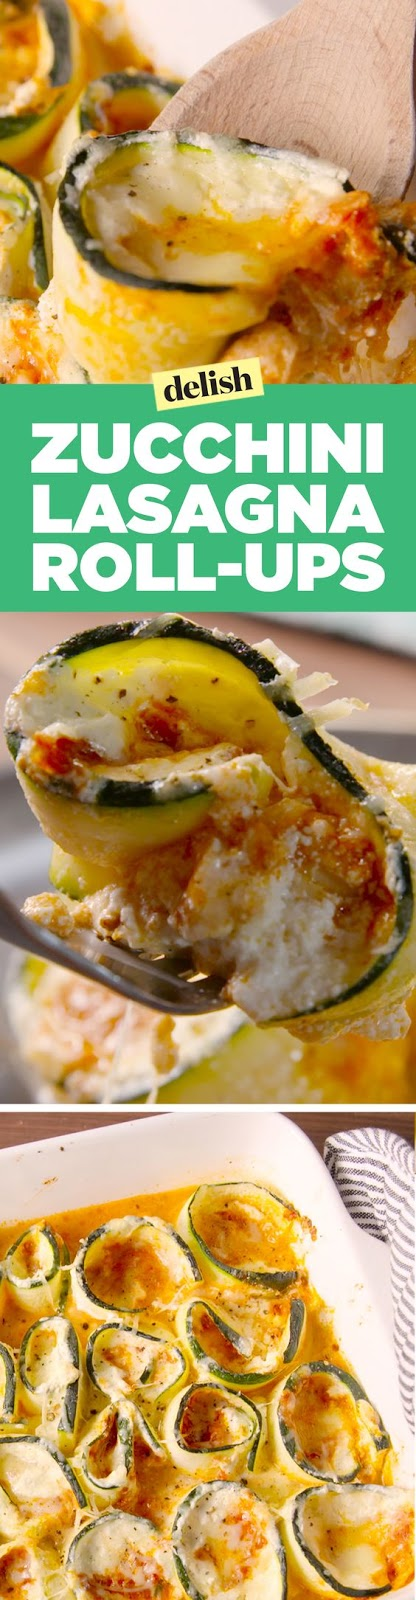 Zucchini Lasagna Roll-Ups Are Low-Carb